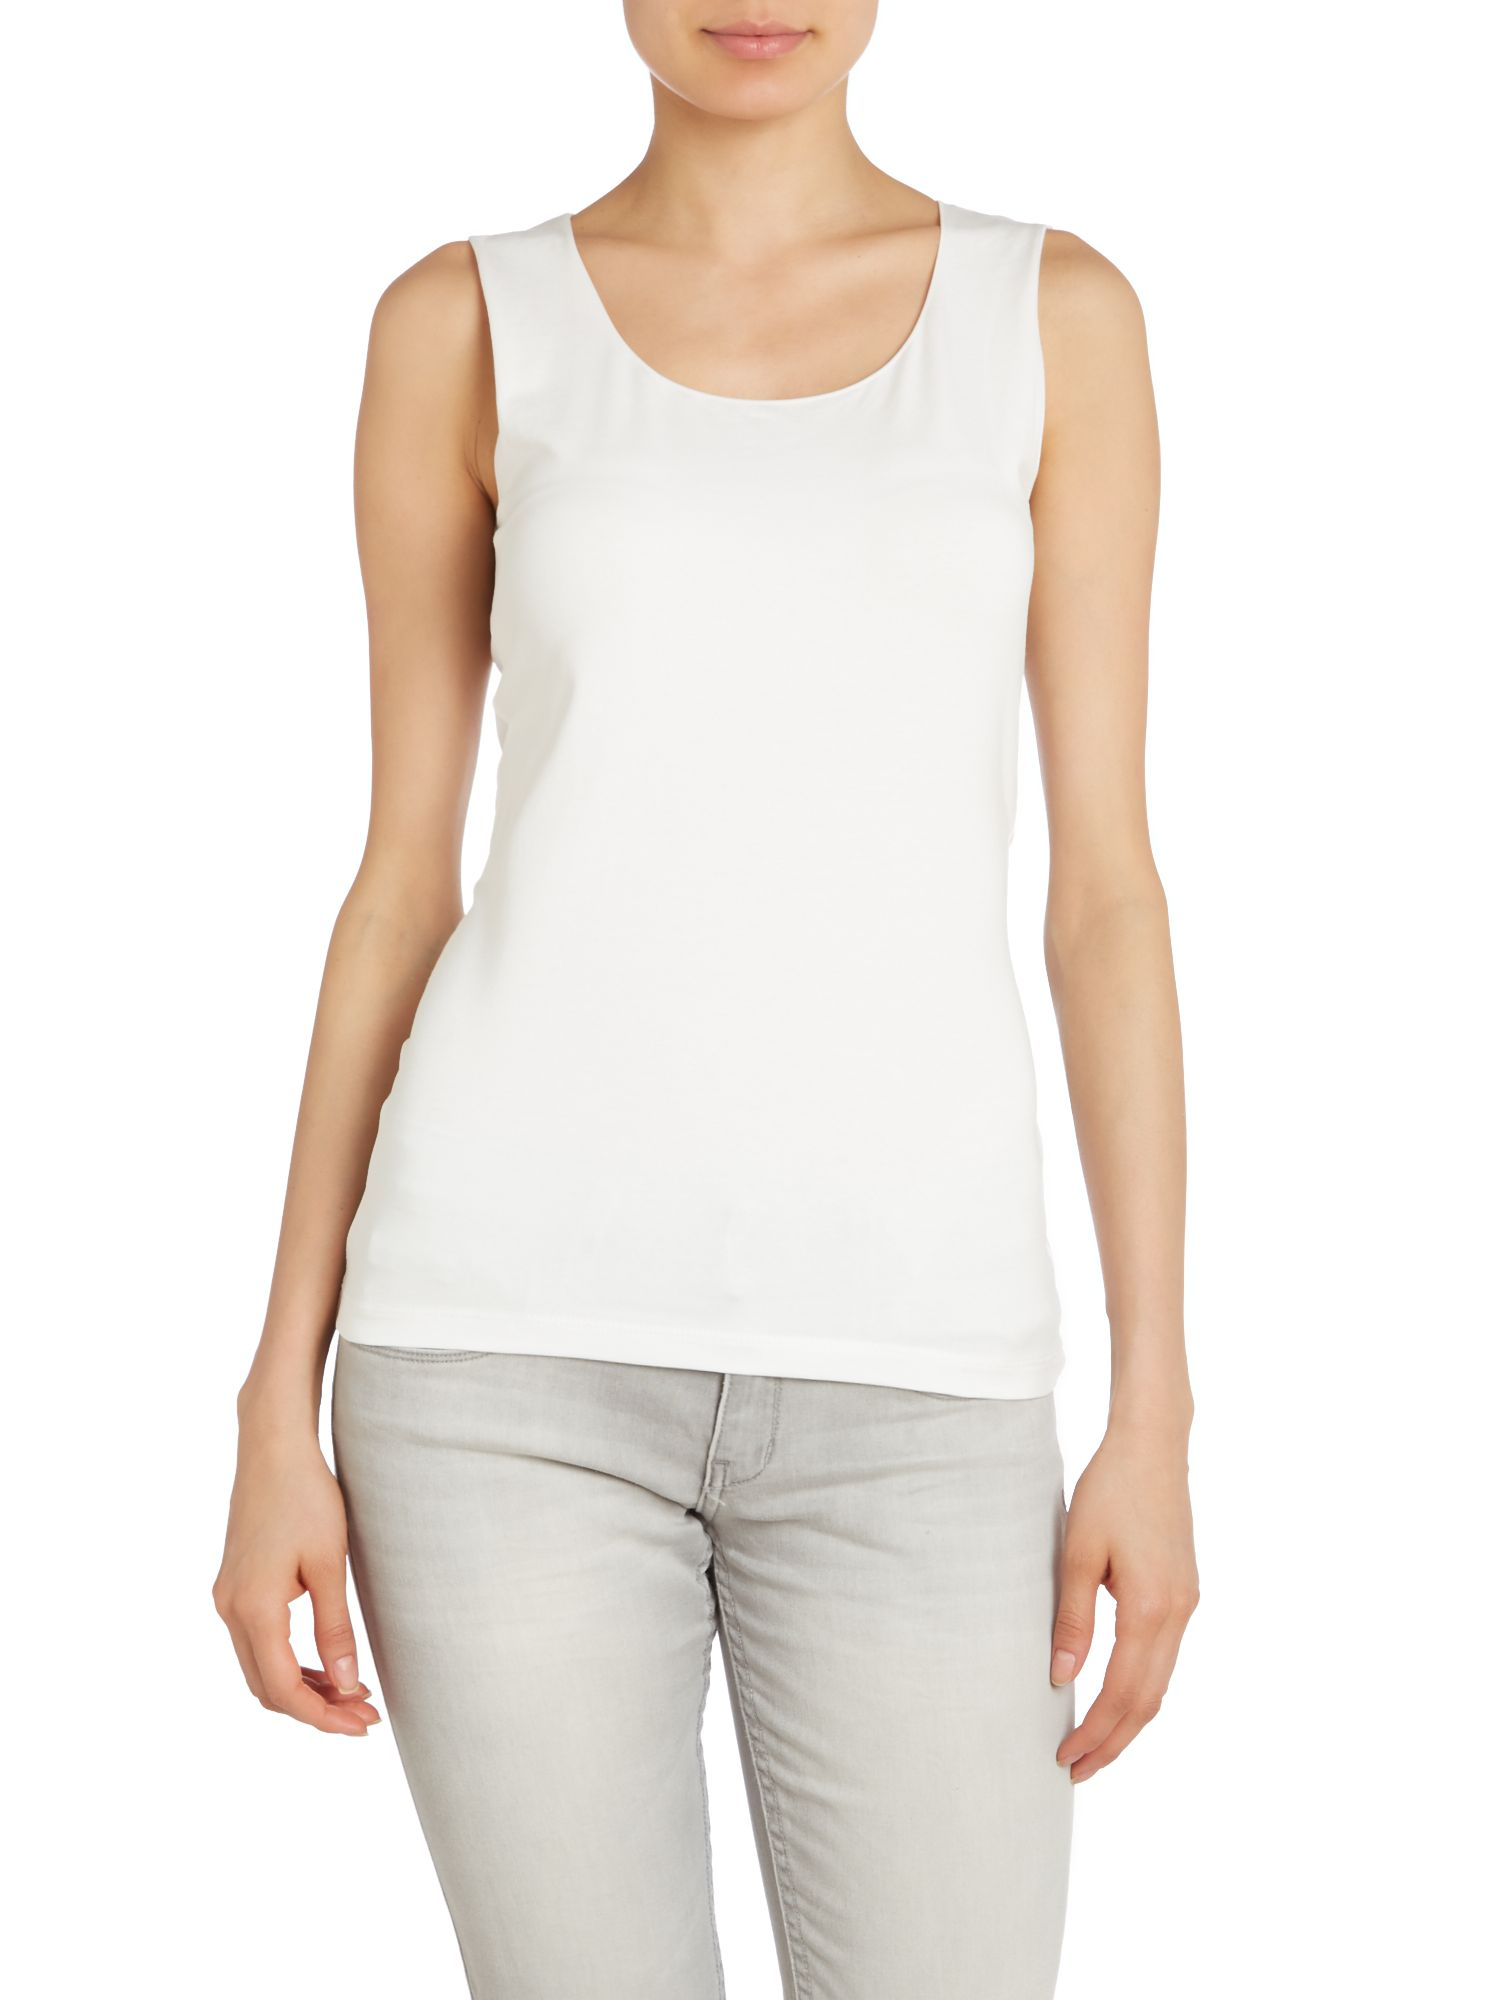 Scoop neck sleeveless vest